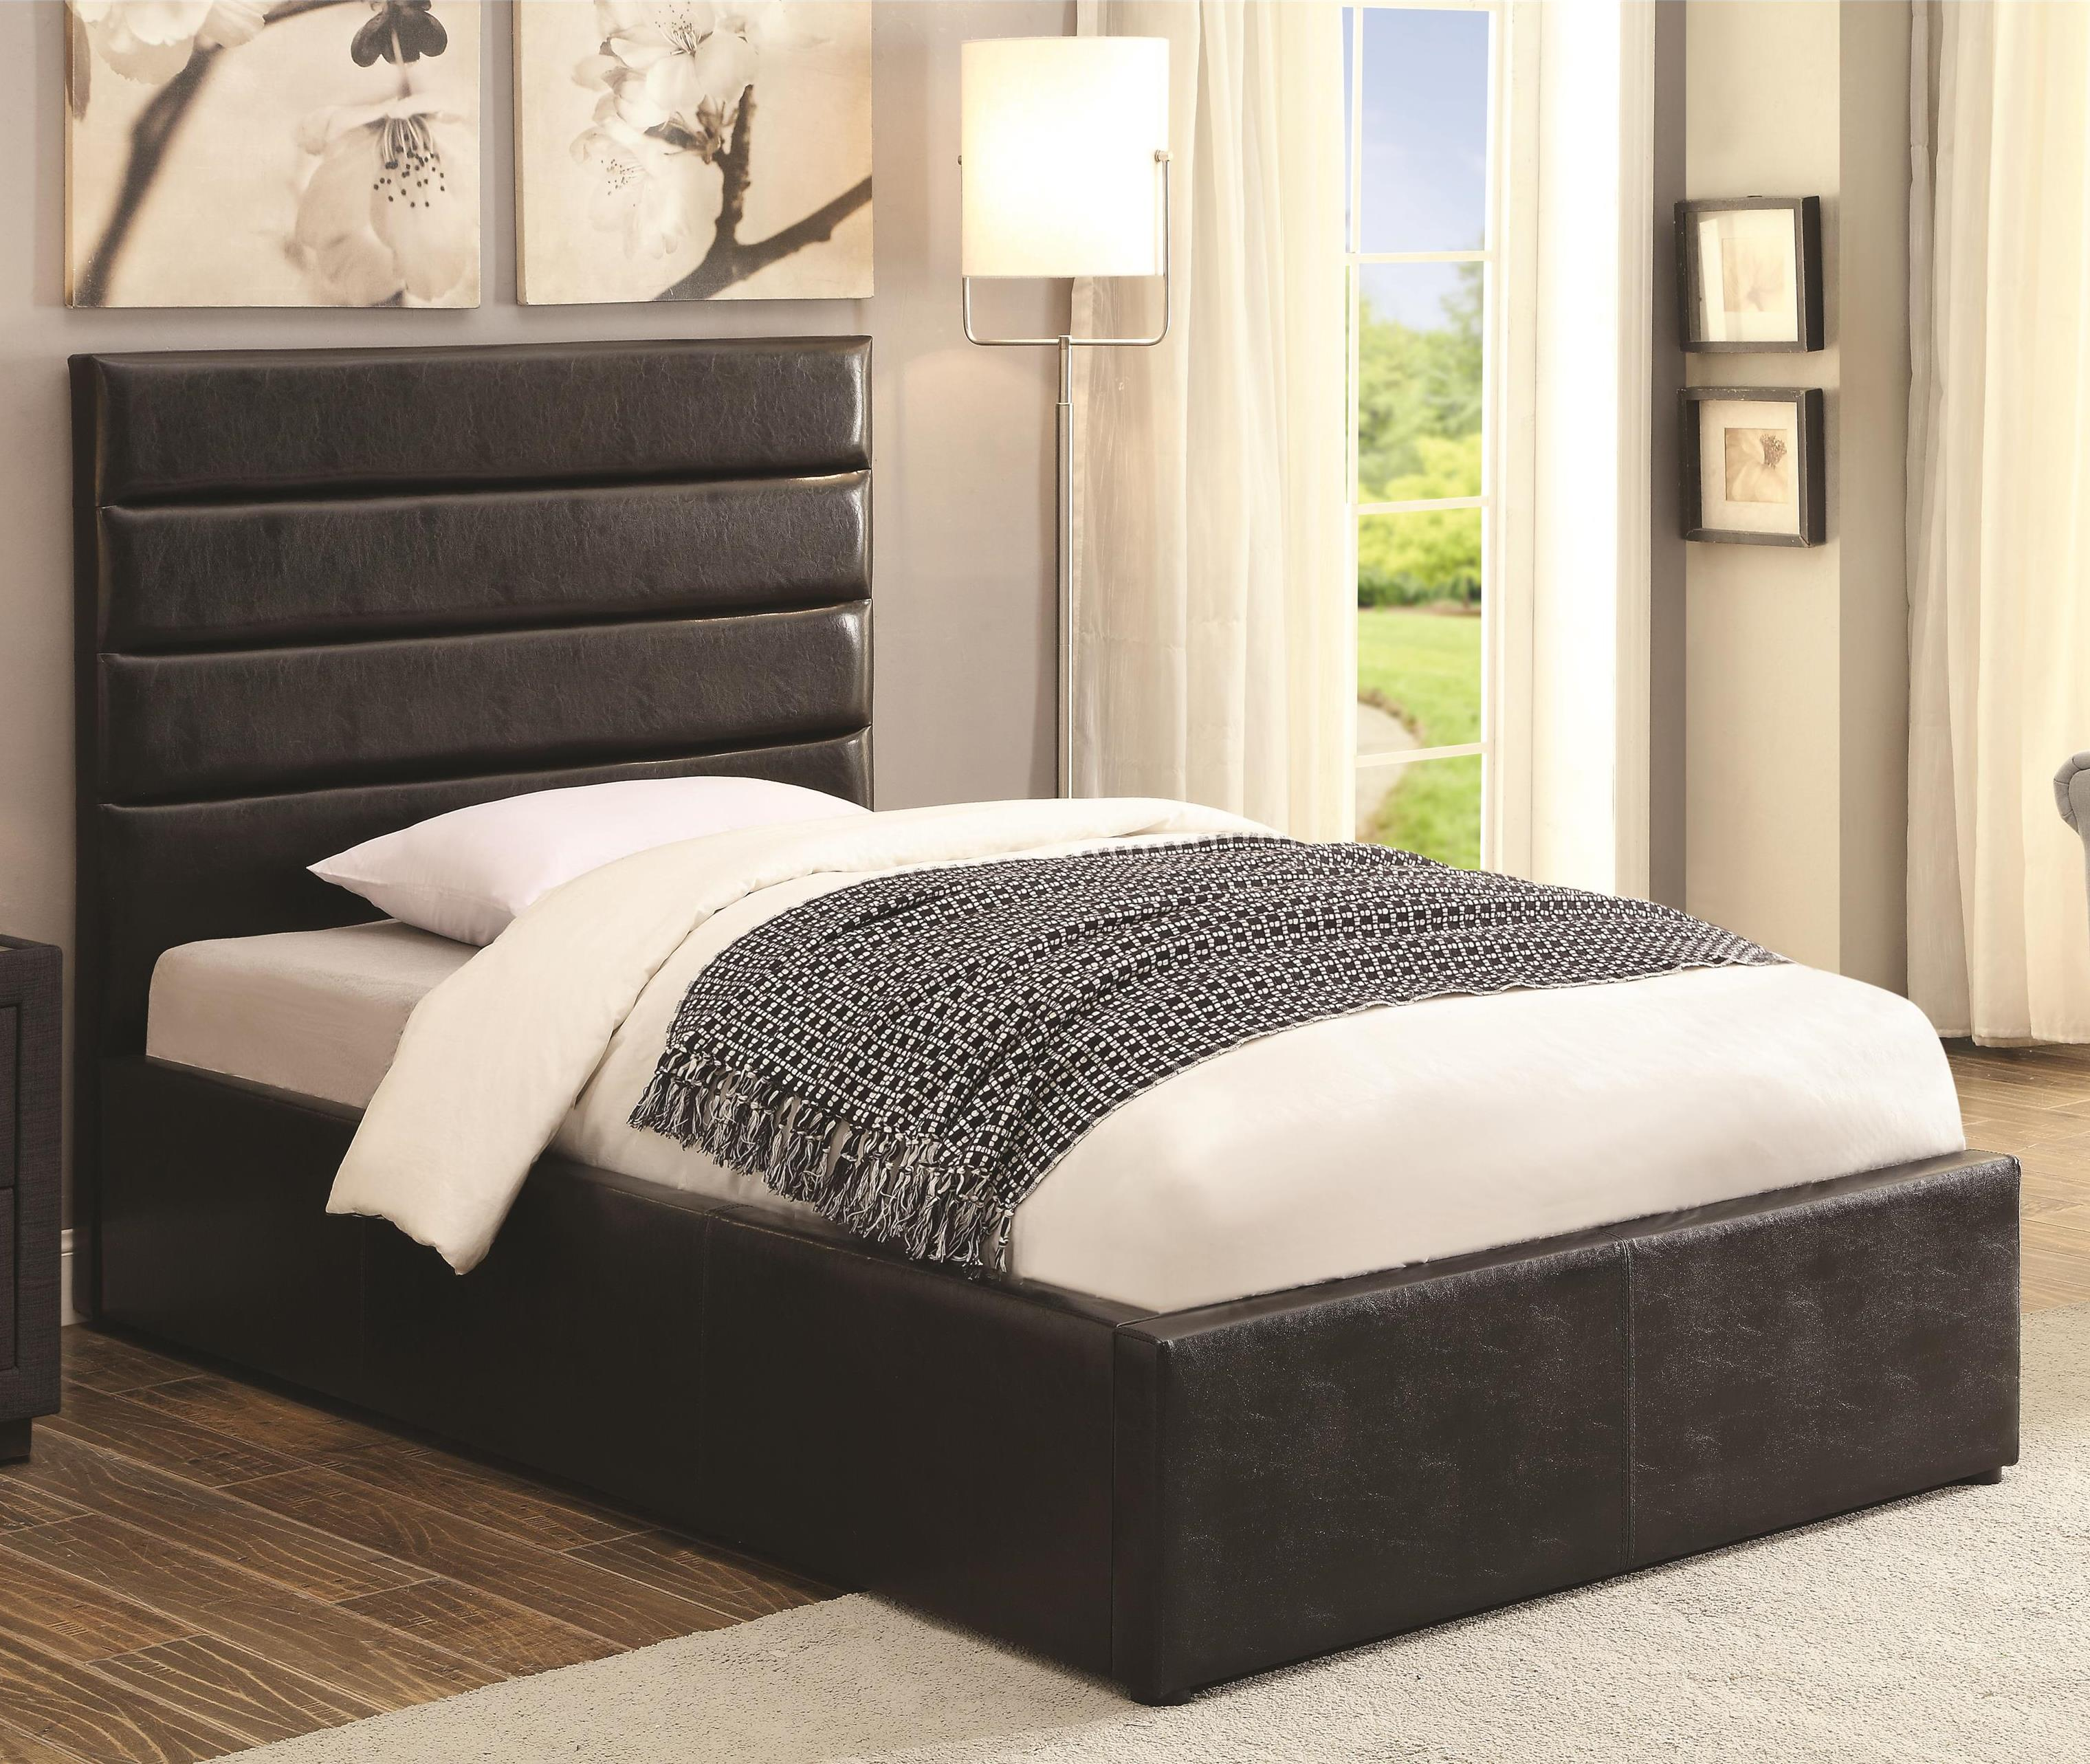 comforter bed king for set to comforters twin pertaining bedding bedroom choose beds sets